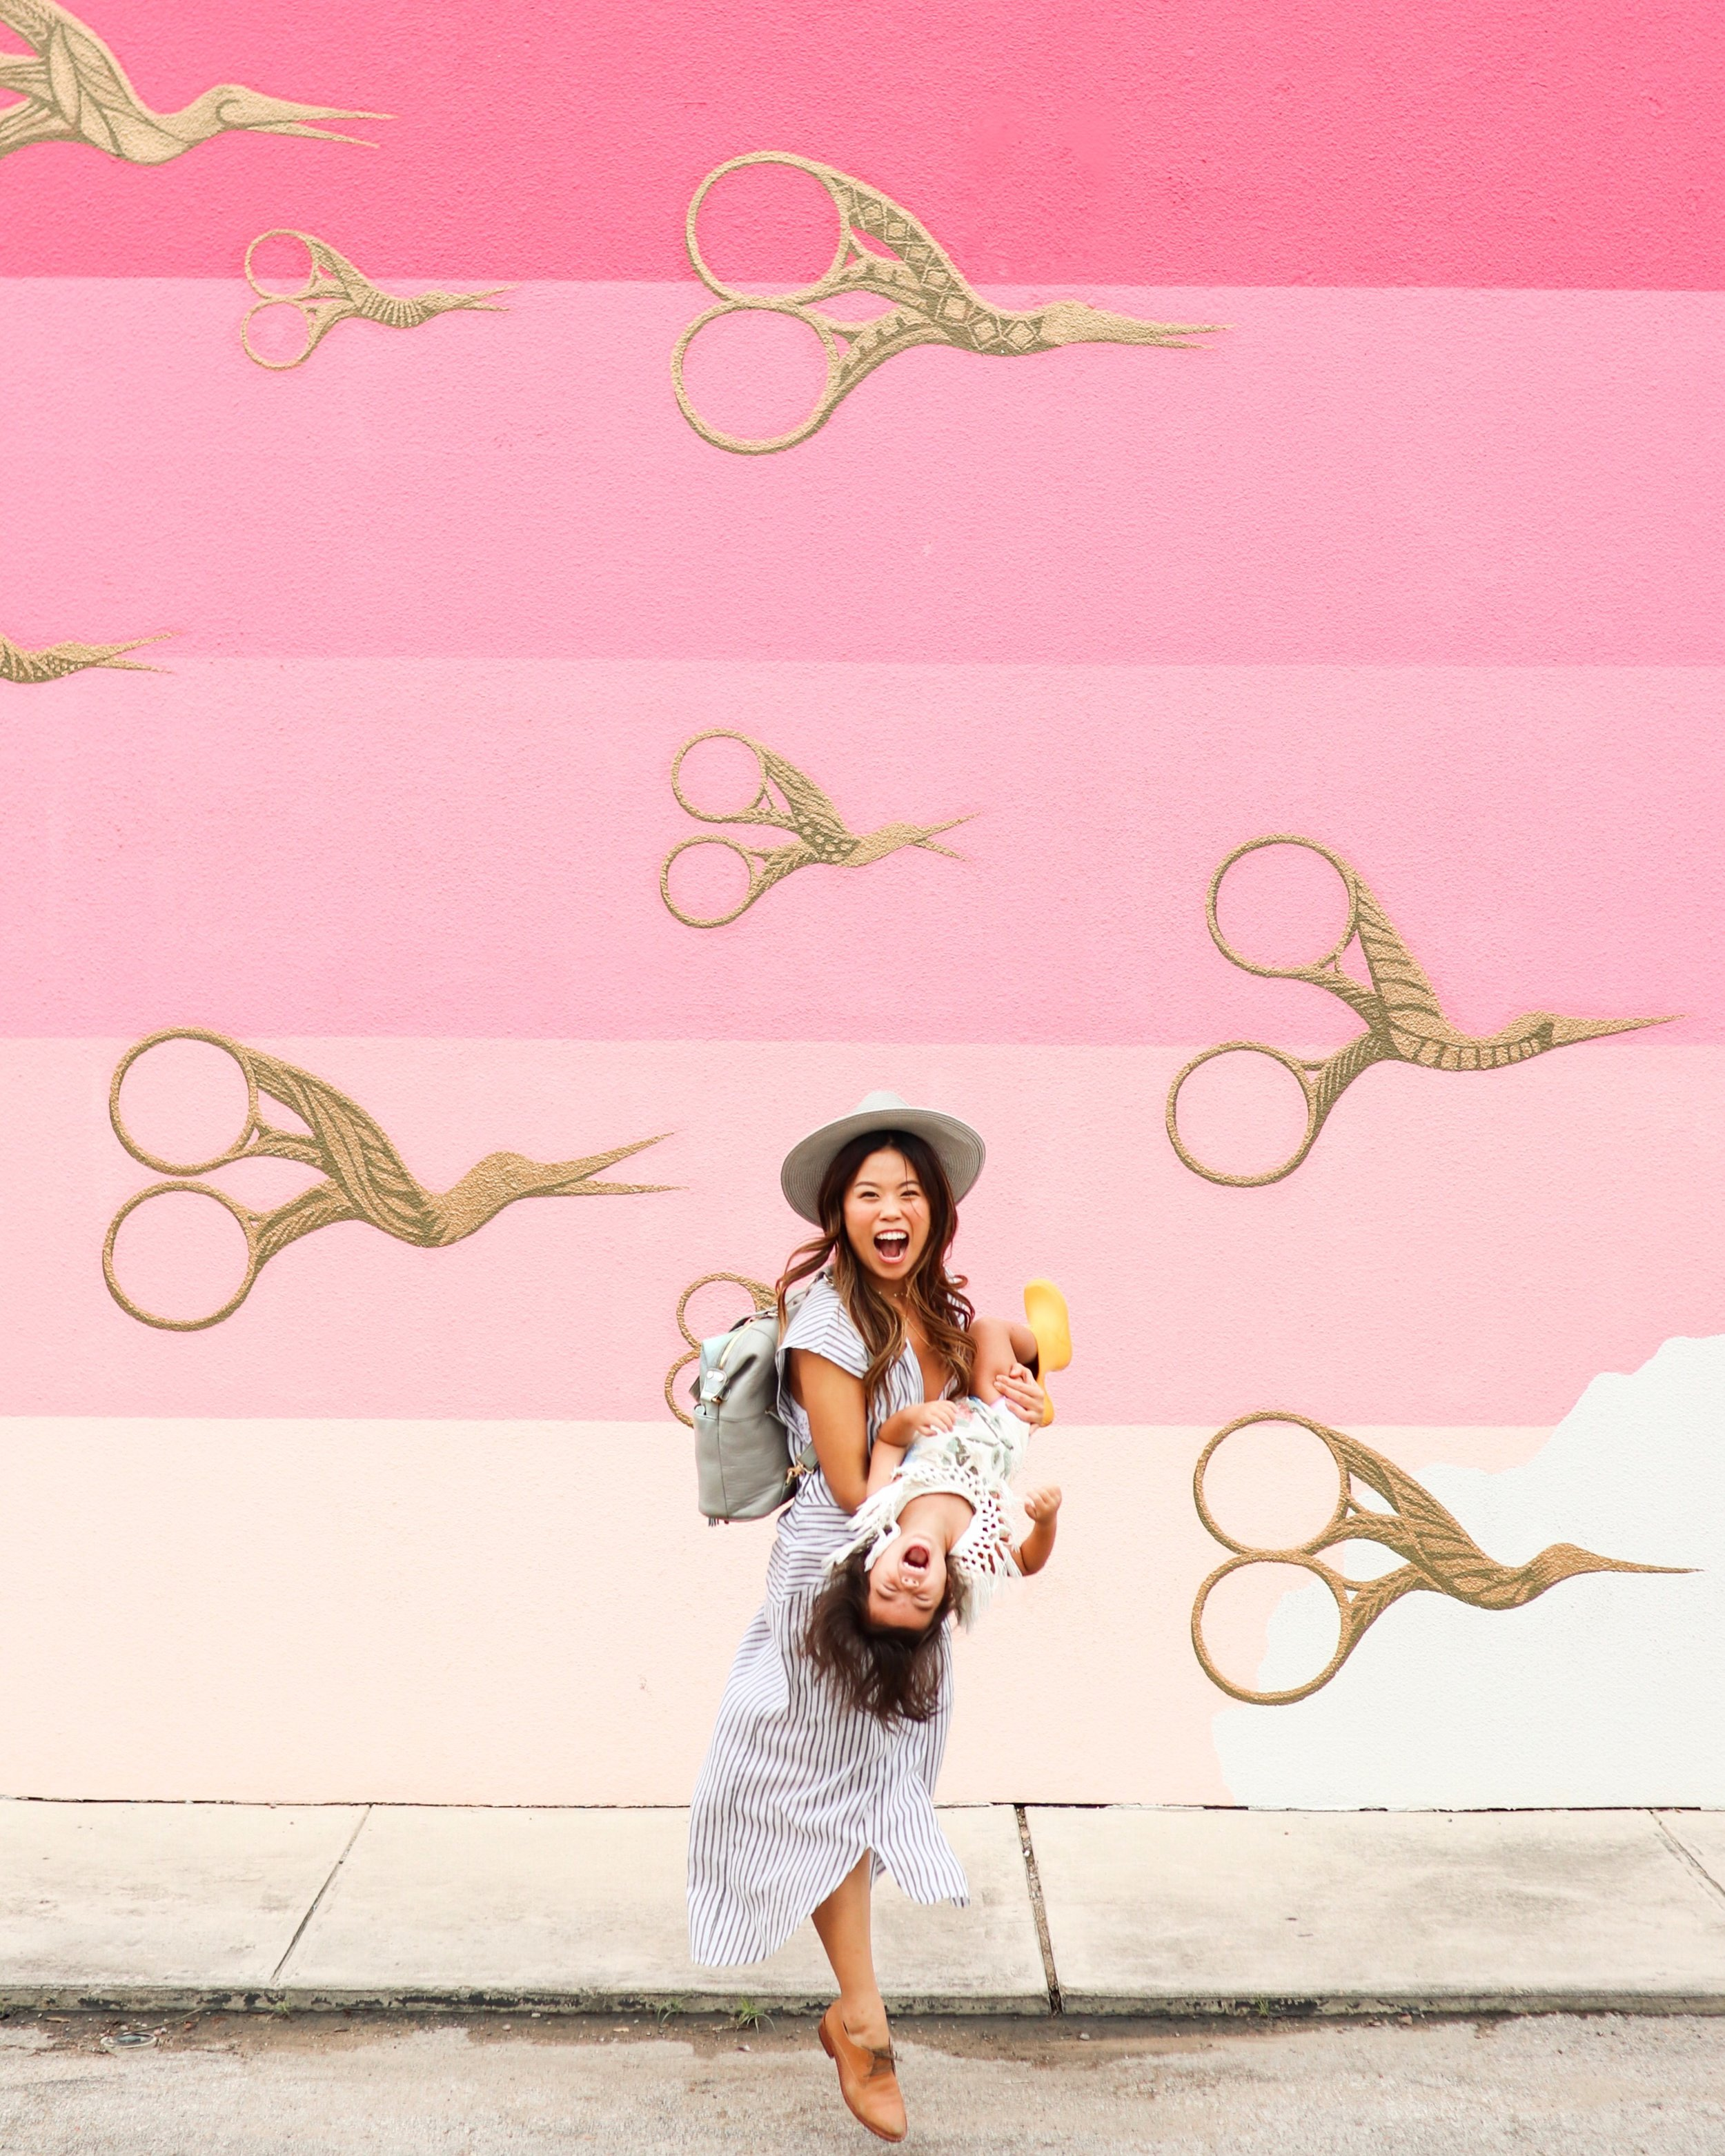 Pink Flying Scissors Mural Austin in 72 Hours - Most Instagrammable Spots to Stay, Eat and Play with a Toddler